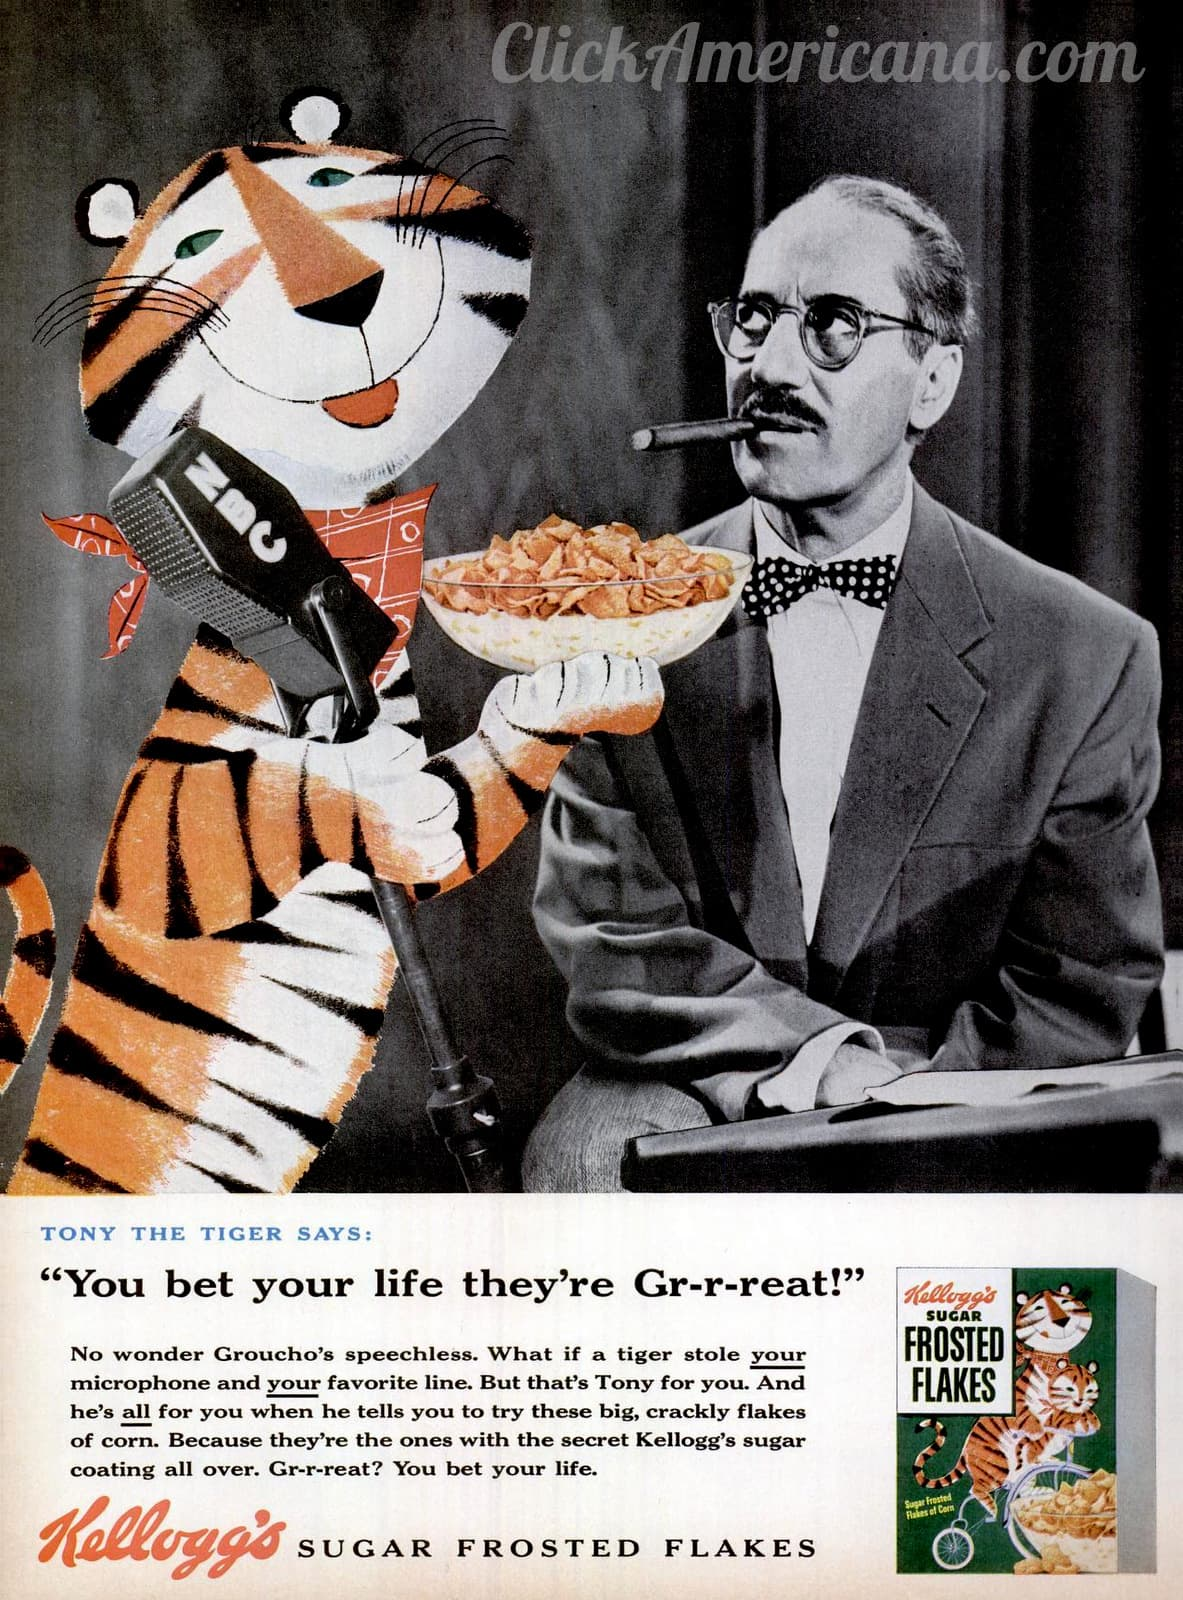 Sugar Frosted Flakes cereal - Groucho and Tony the Tiger (1955)